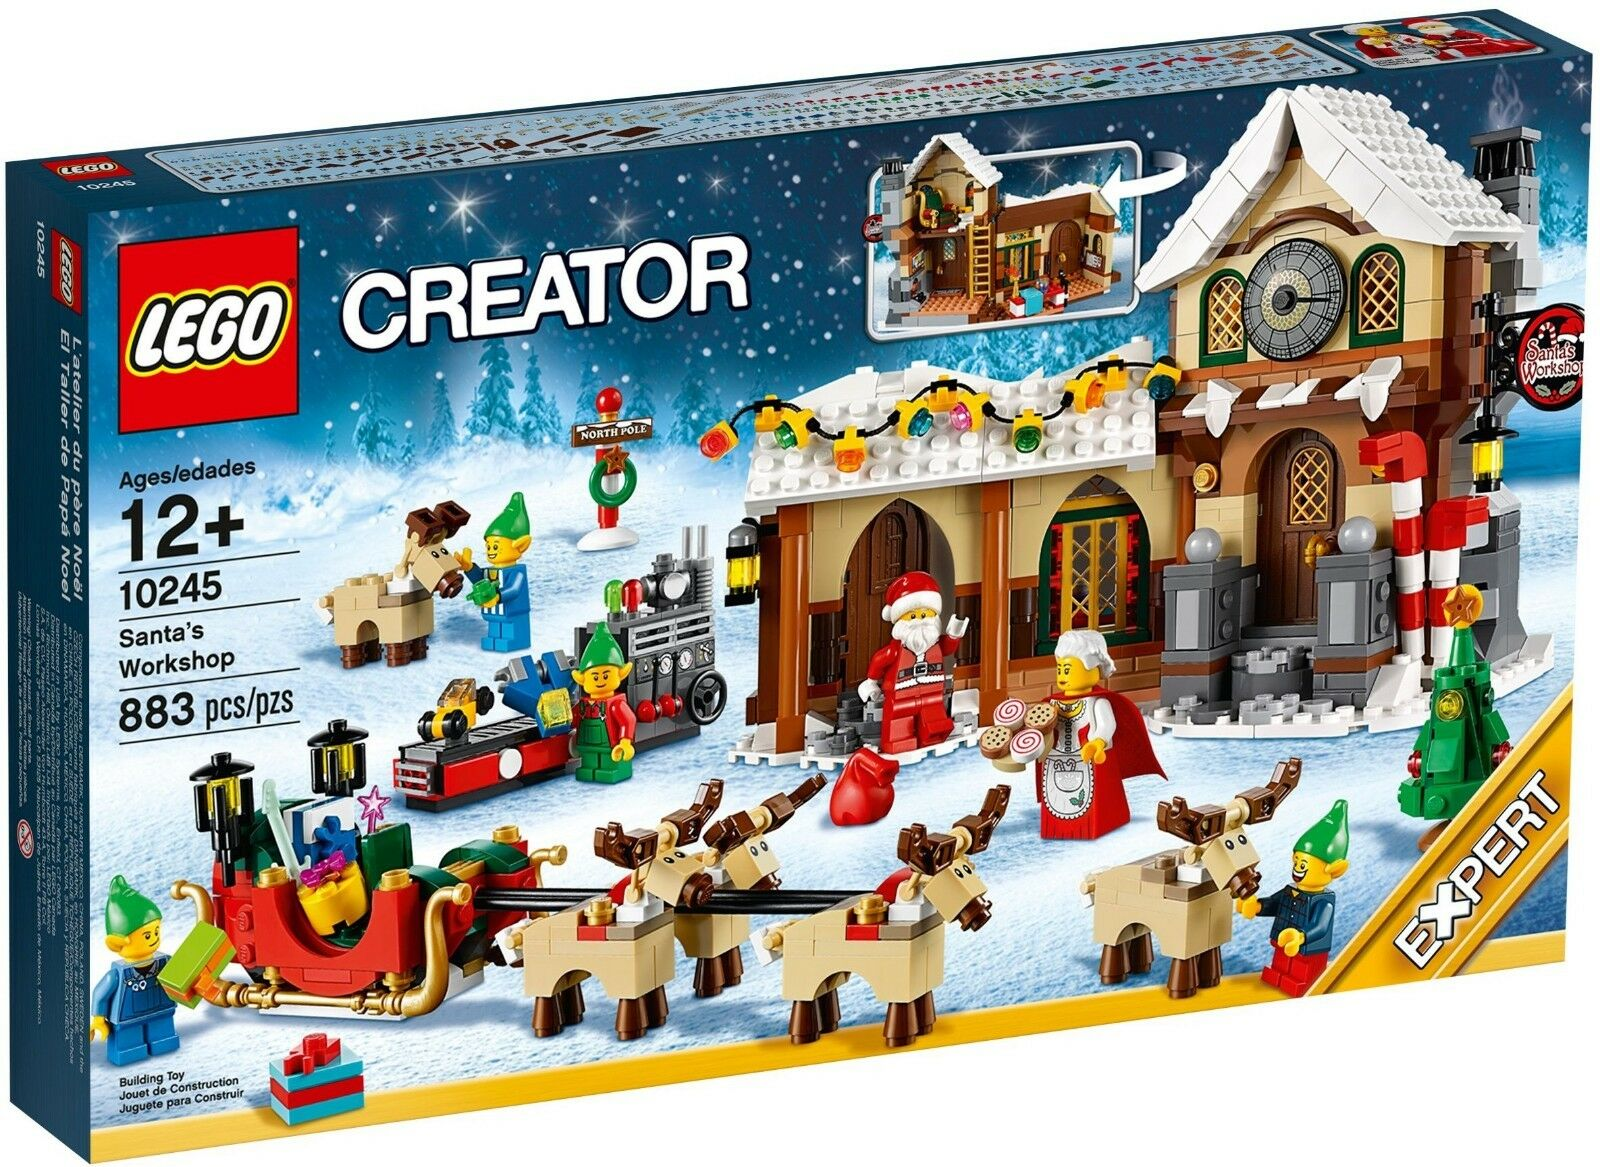 LEGO Creator Creator Creator Santa's Workshop 10245 = New 7565dd